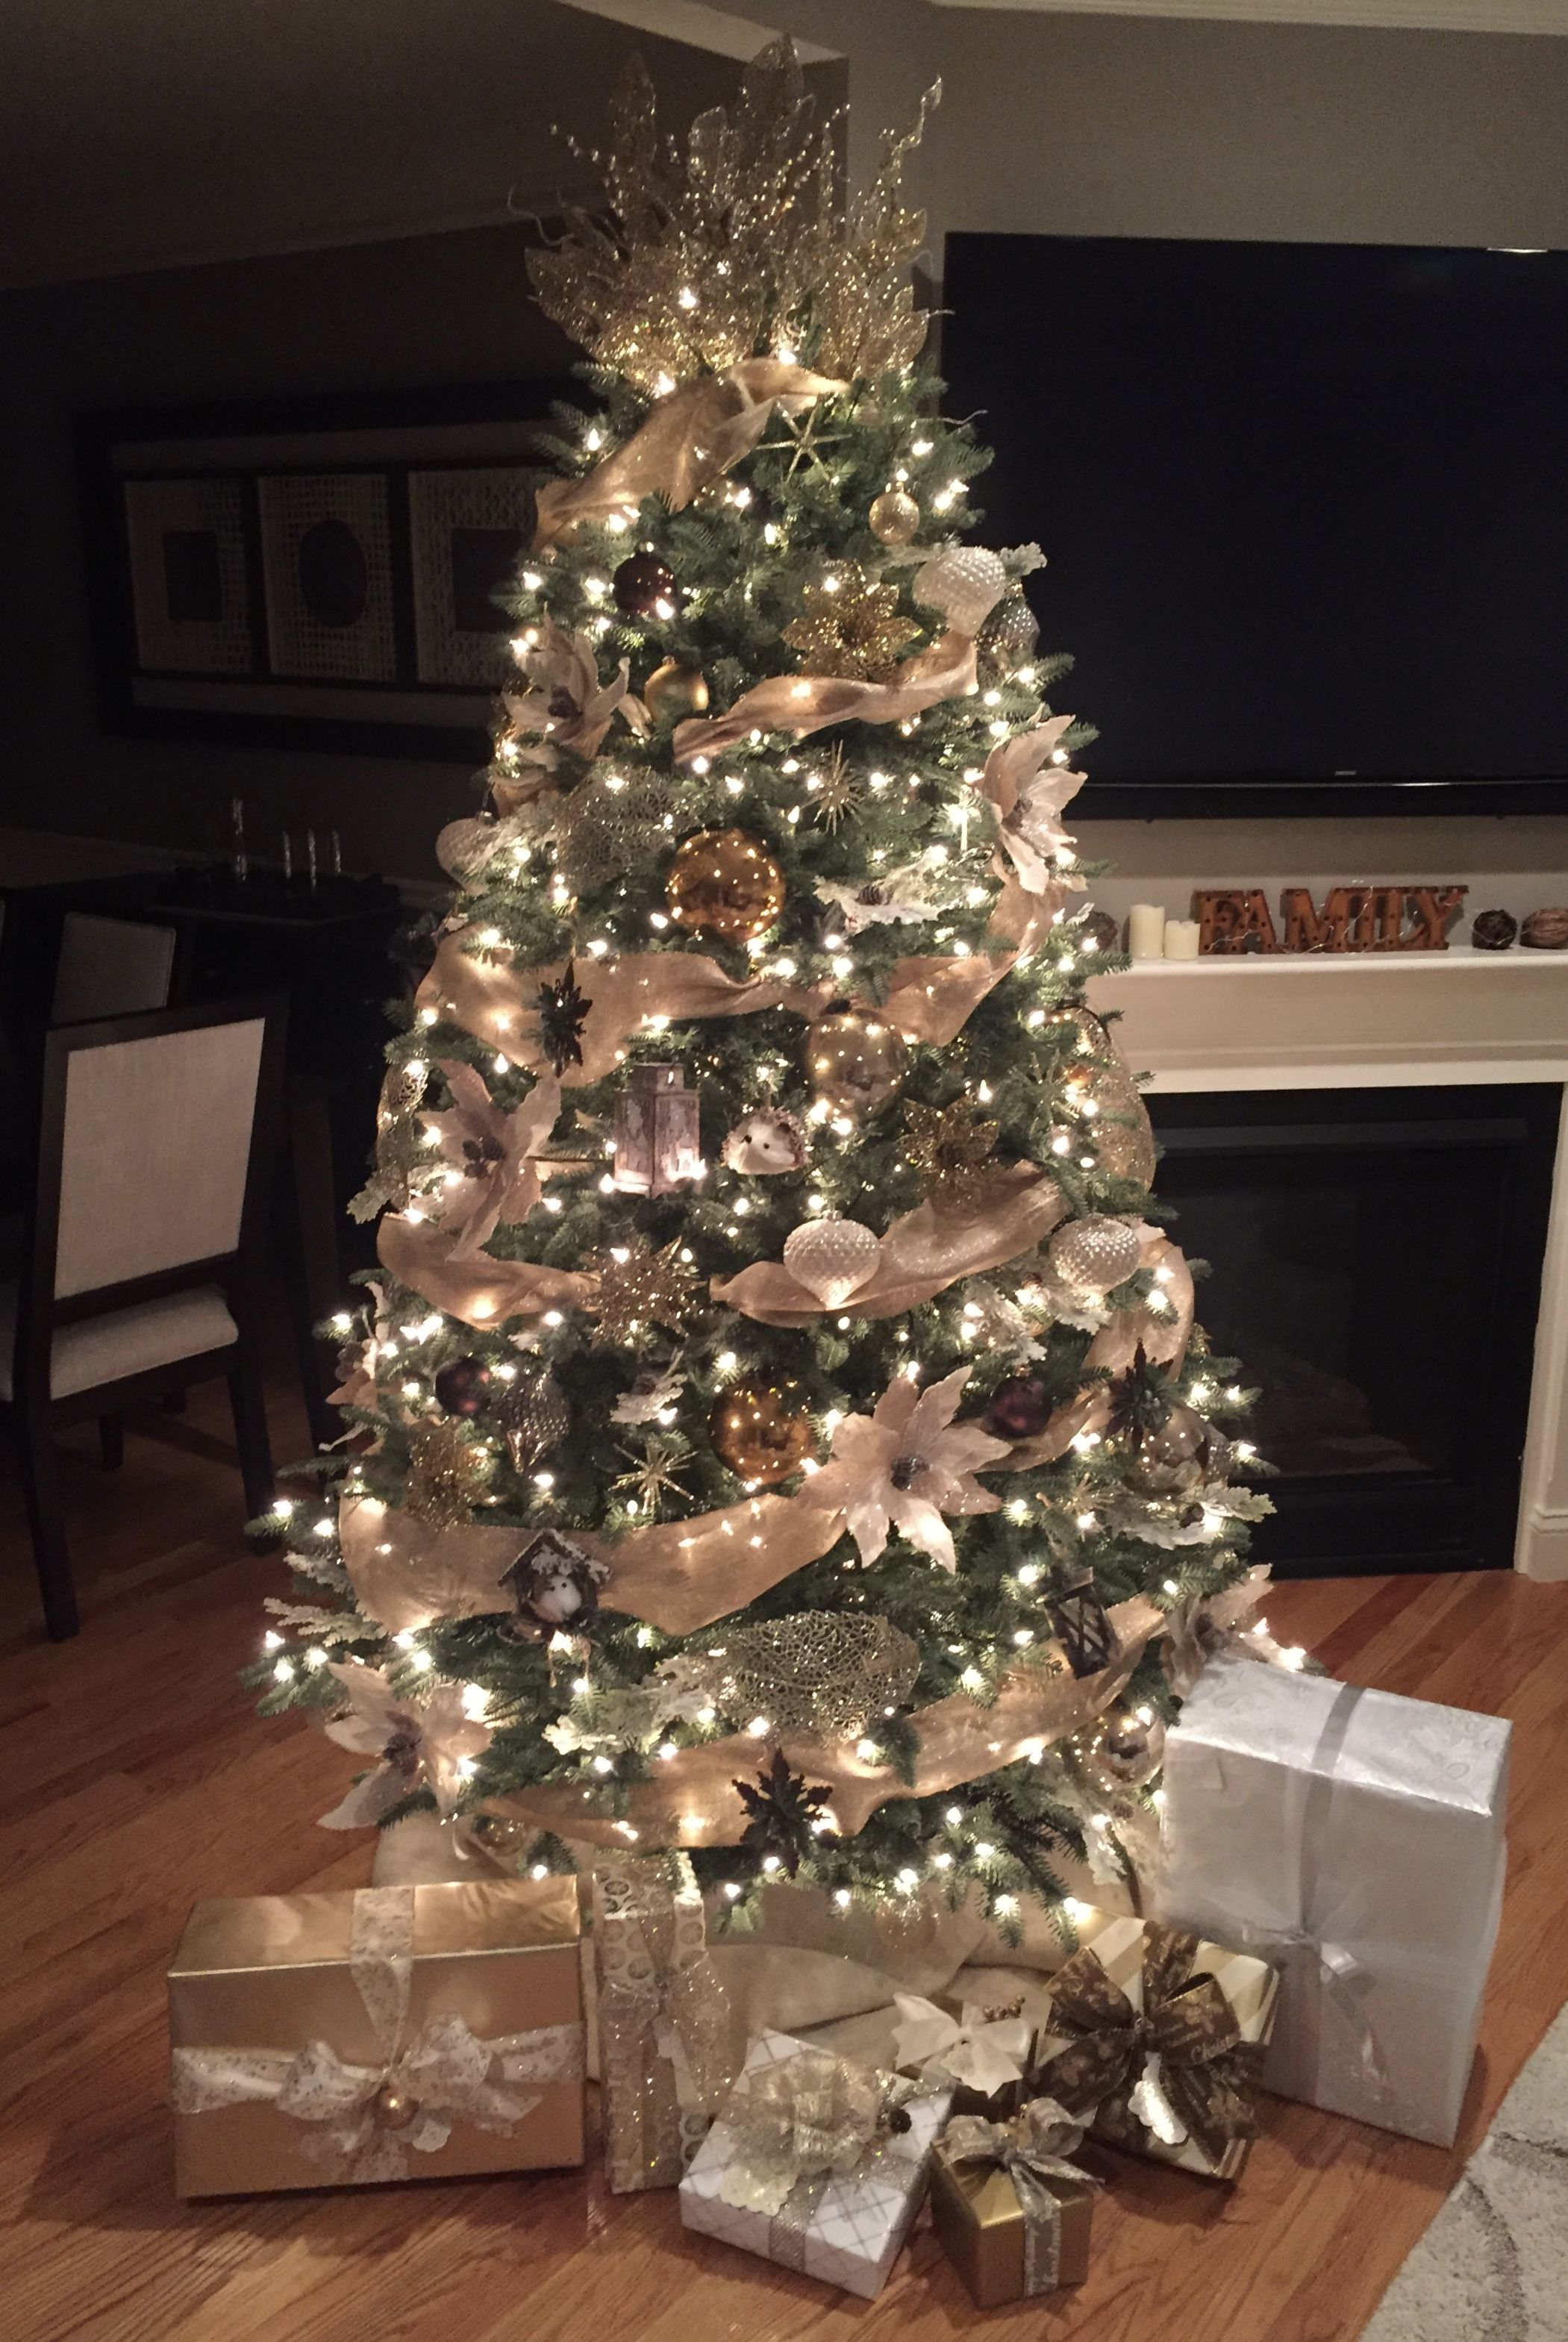 Rustic Glam Elegant Christmas Tree in Golds, Champagne